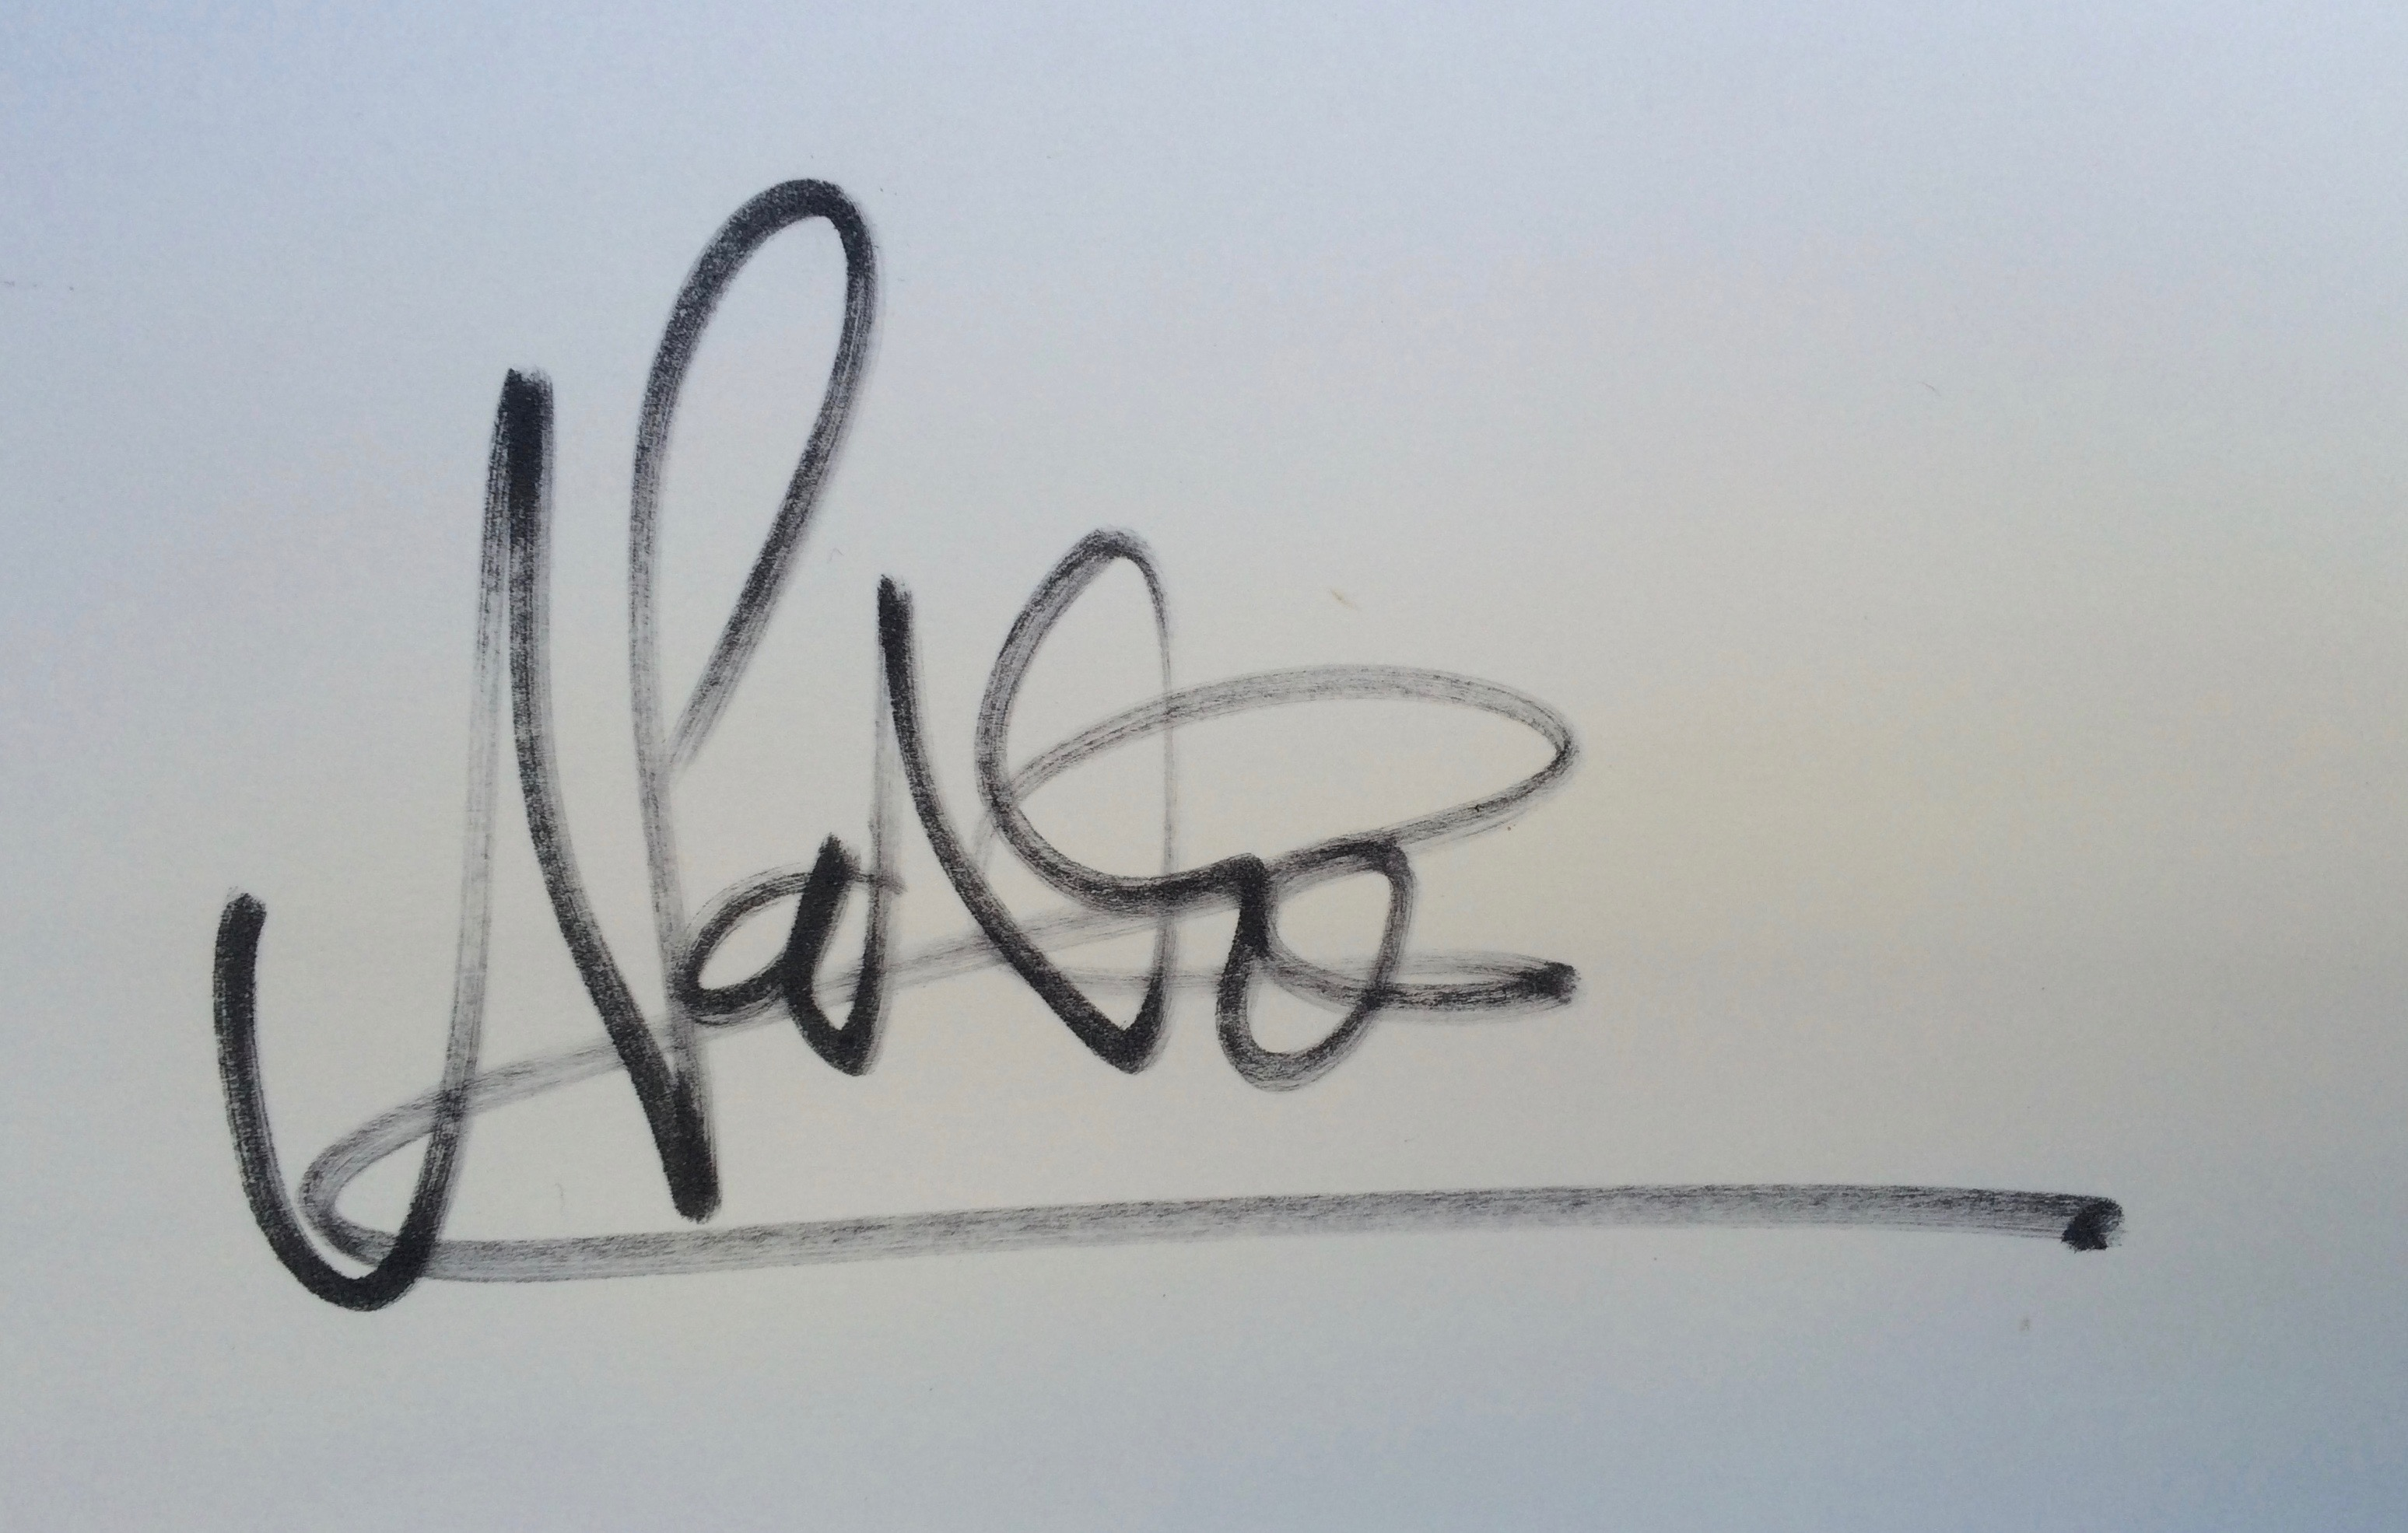 Nathan Huxtable's Signature